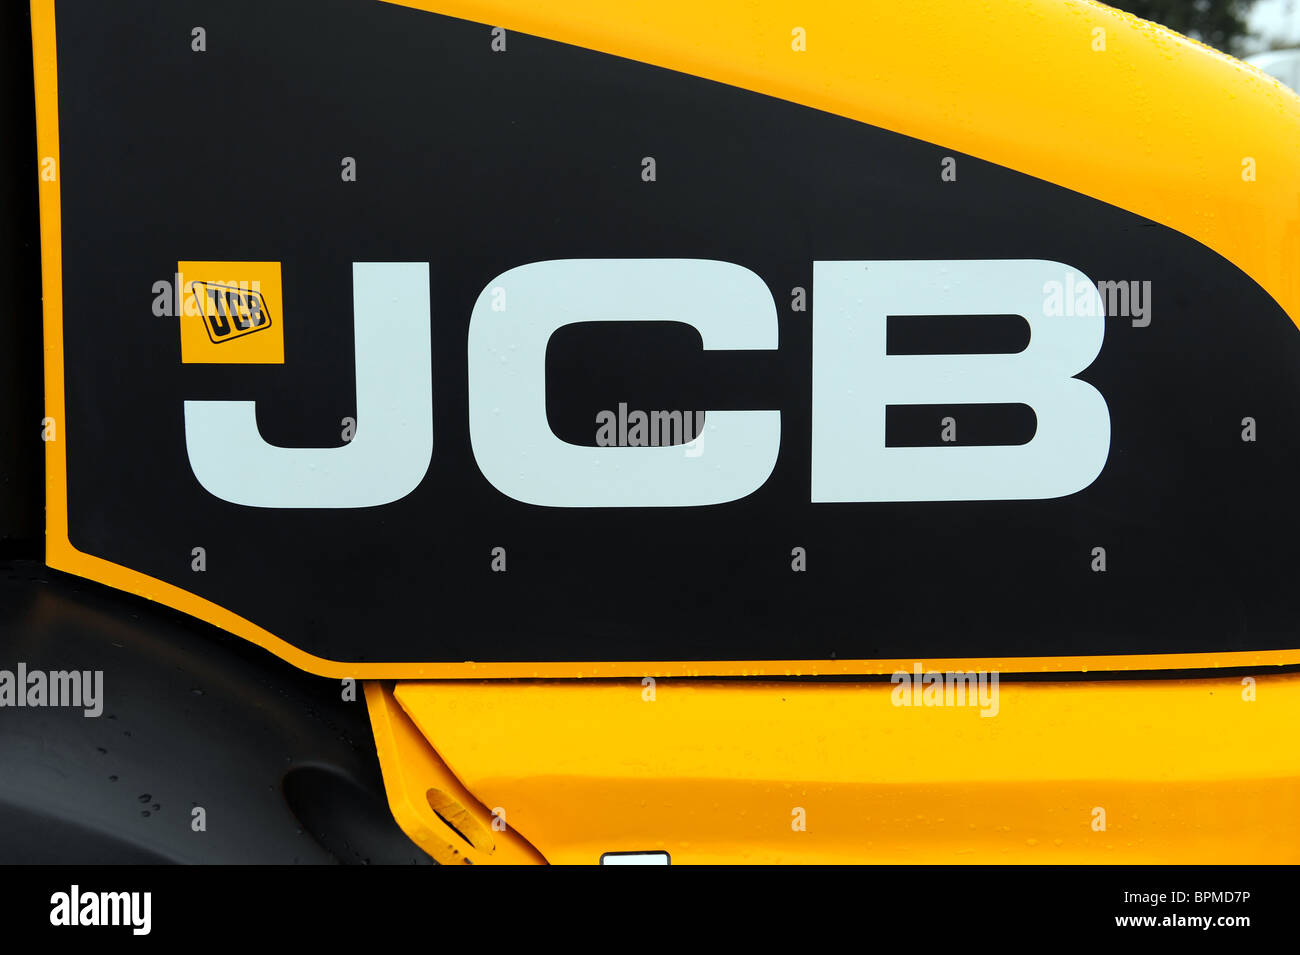 JCB logo on the side of a digger - Stock Image